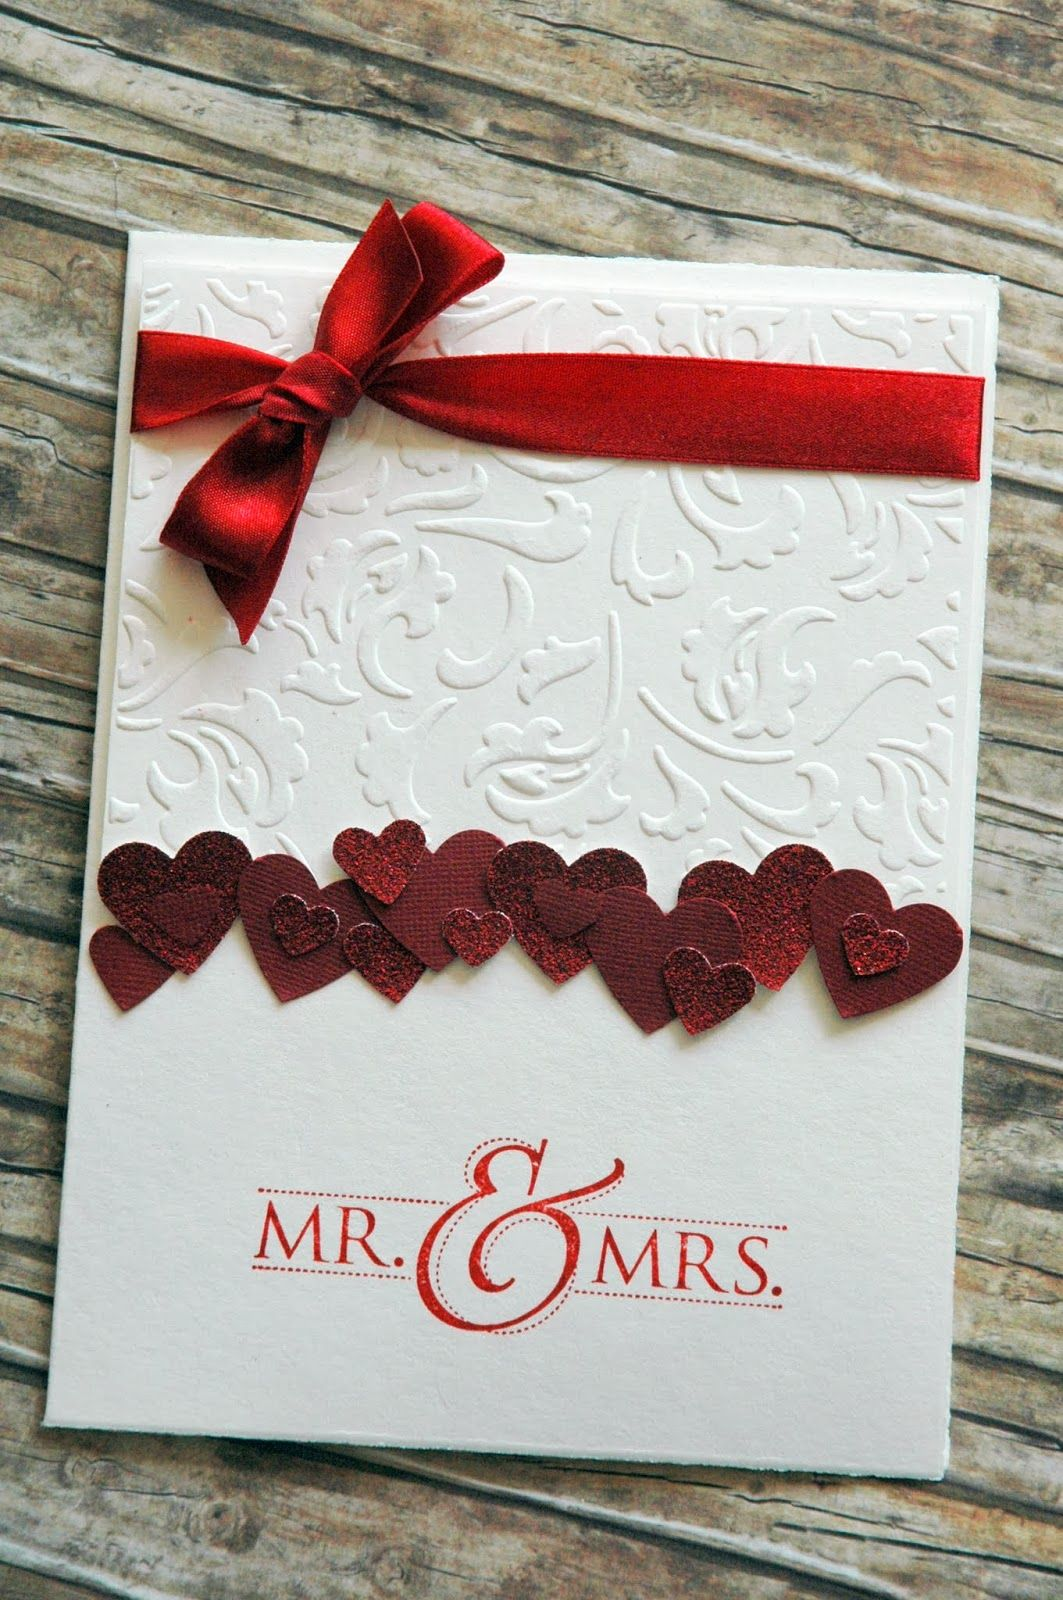 Pin by Linda Soper on Valentine Cards | Pinterest | Cards, Wedding ...